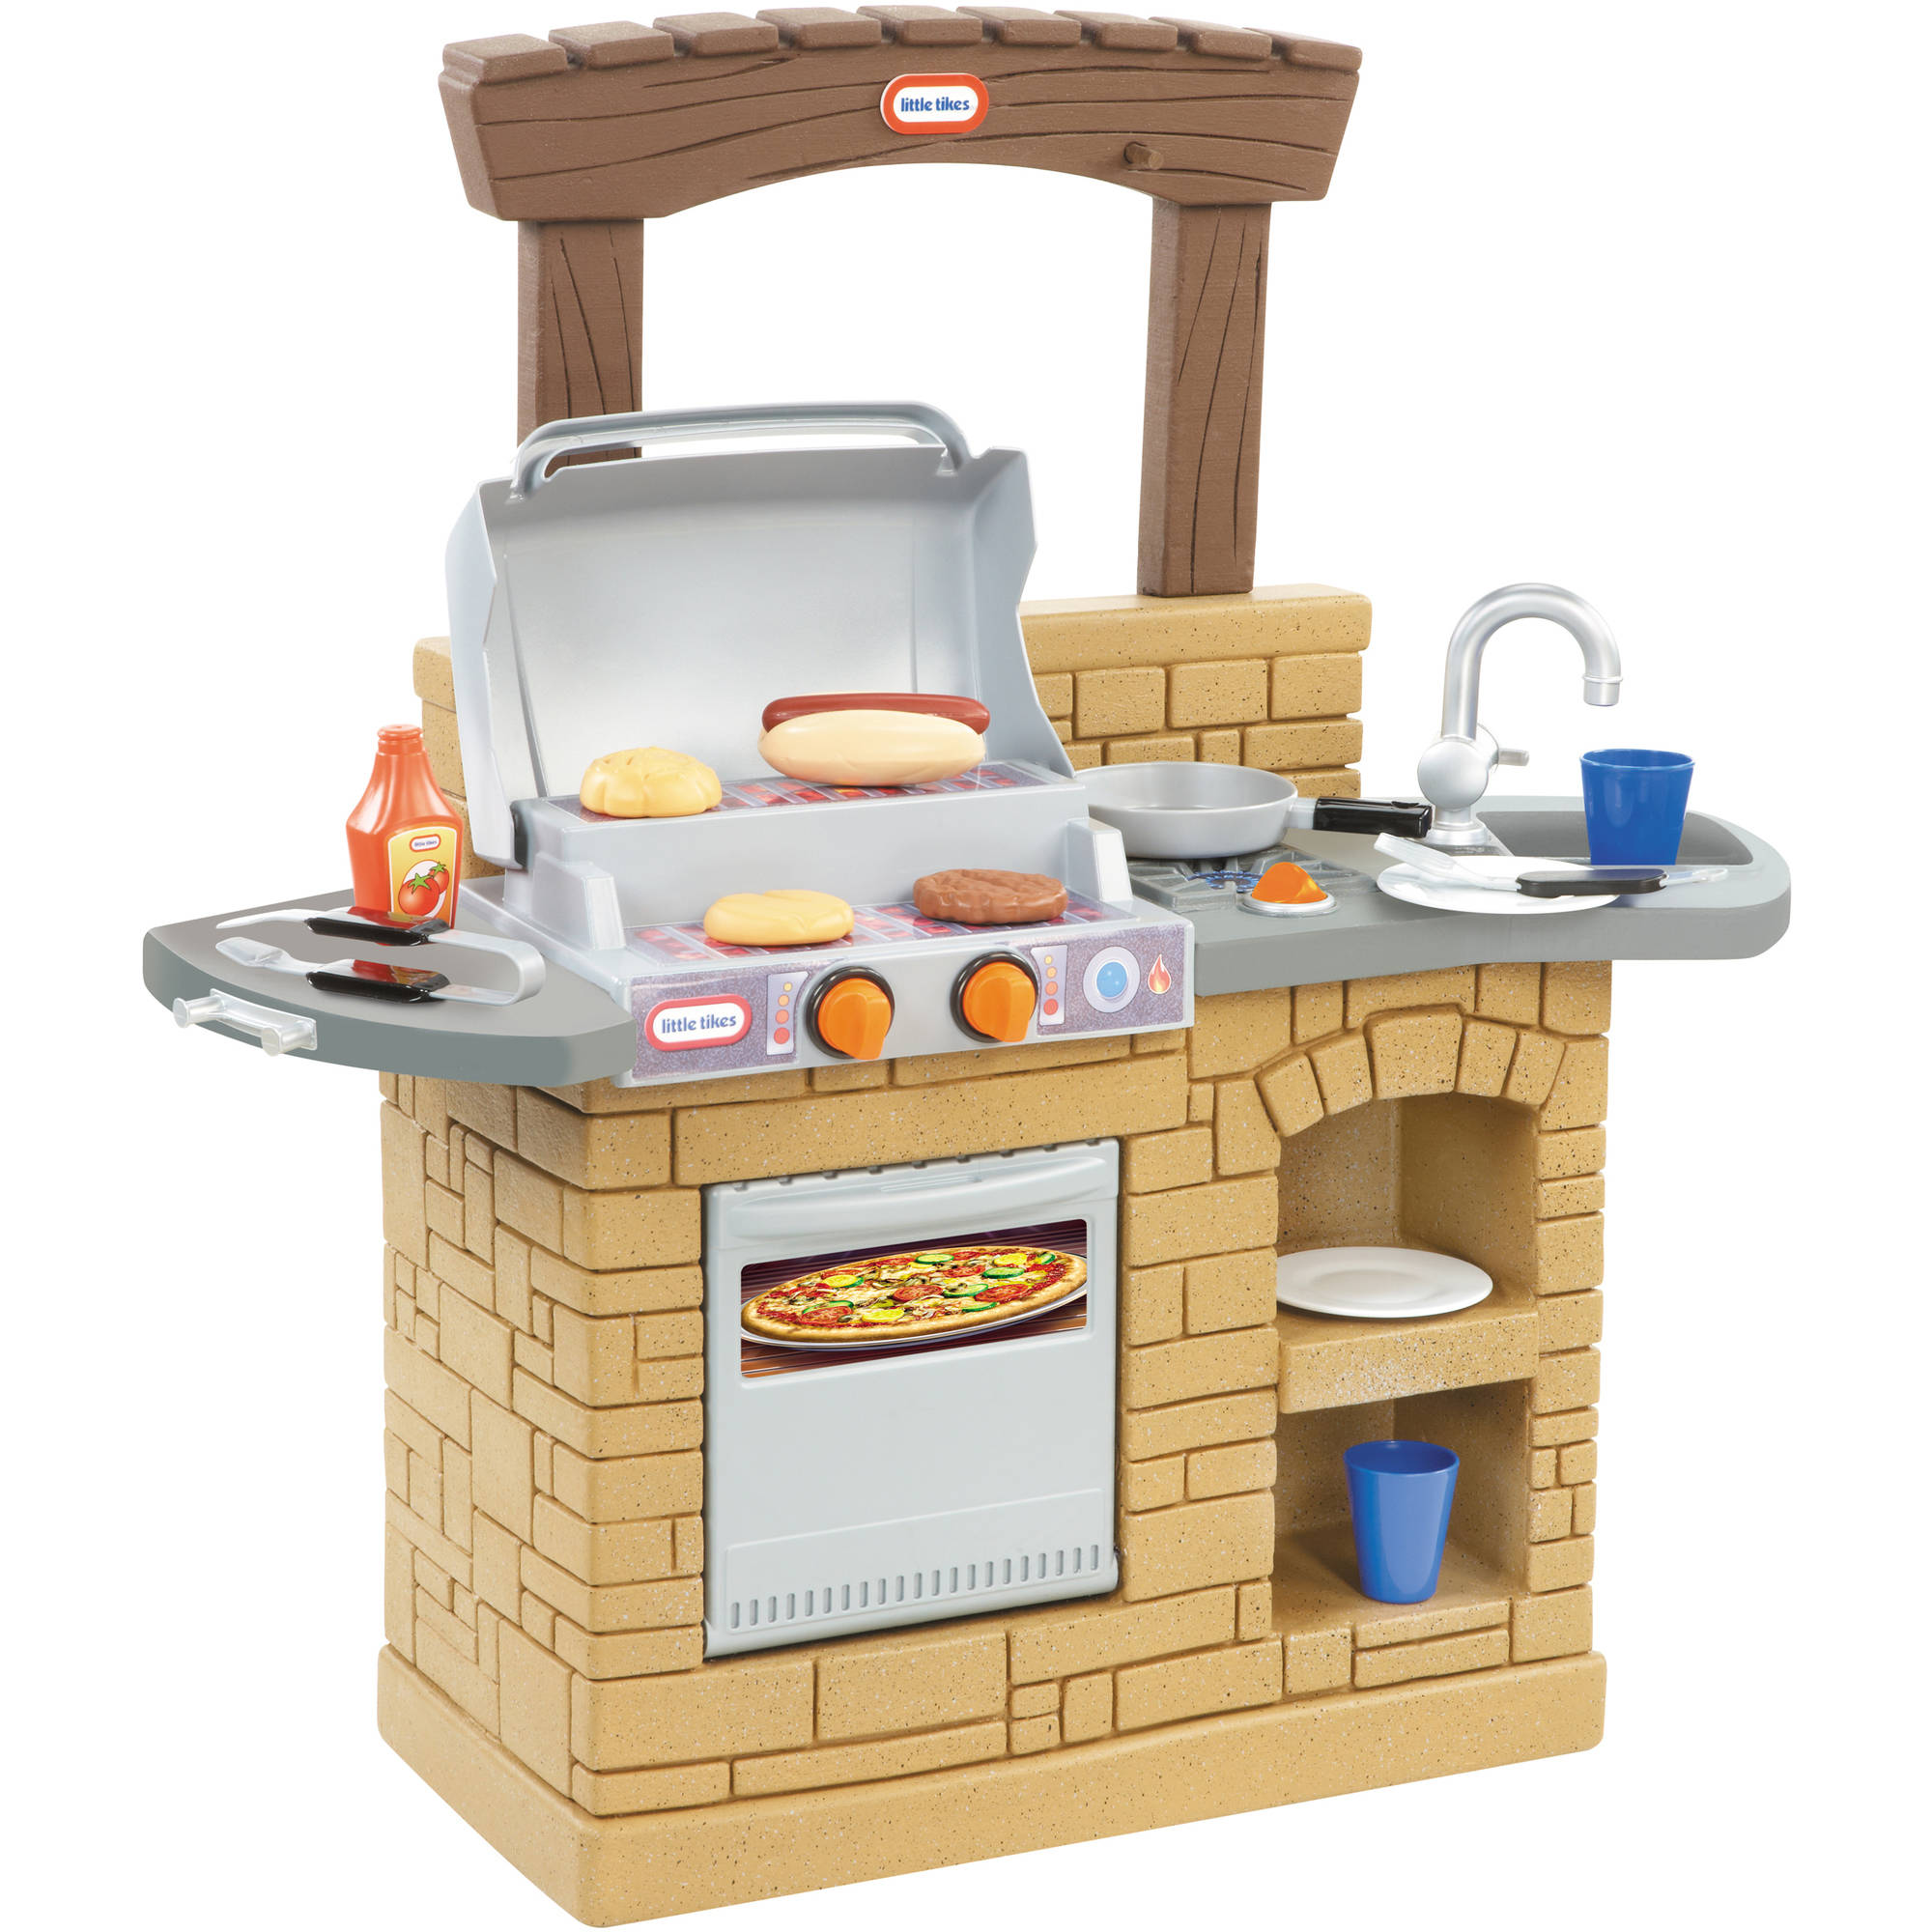 Little Tikes Cook \'n Play Outdoor BBQ Grill